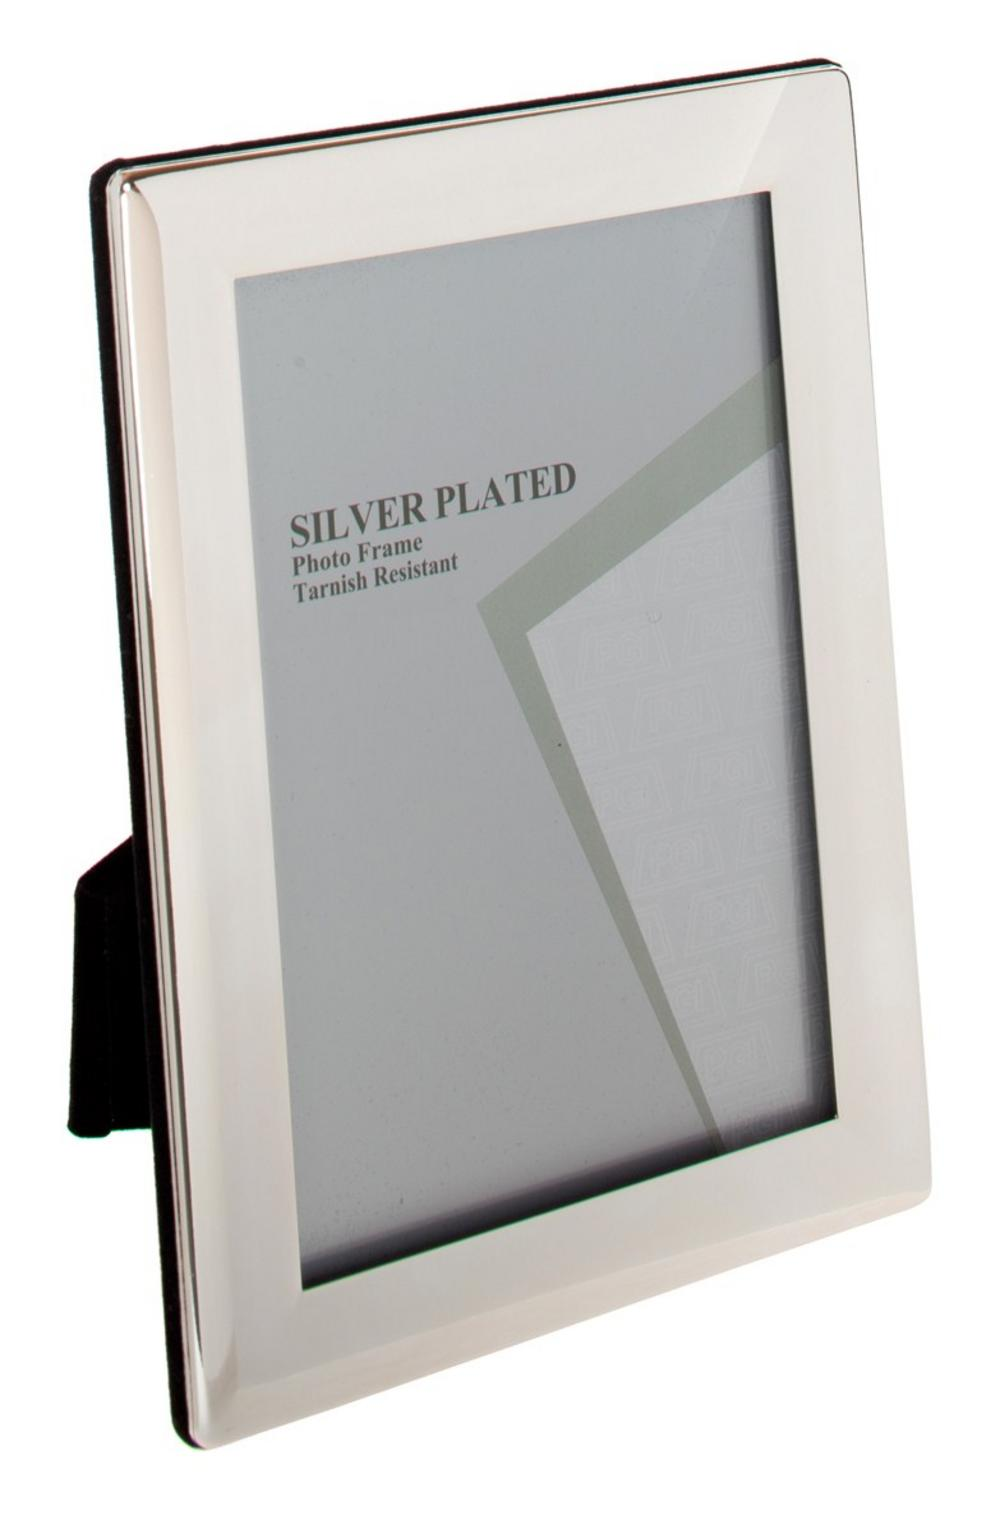 "Unity Silver Plated Thin Edge Photo Frame 12"" x 10"""